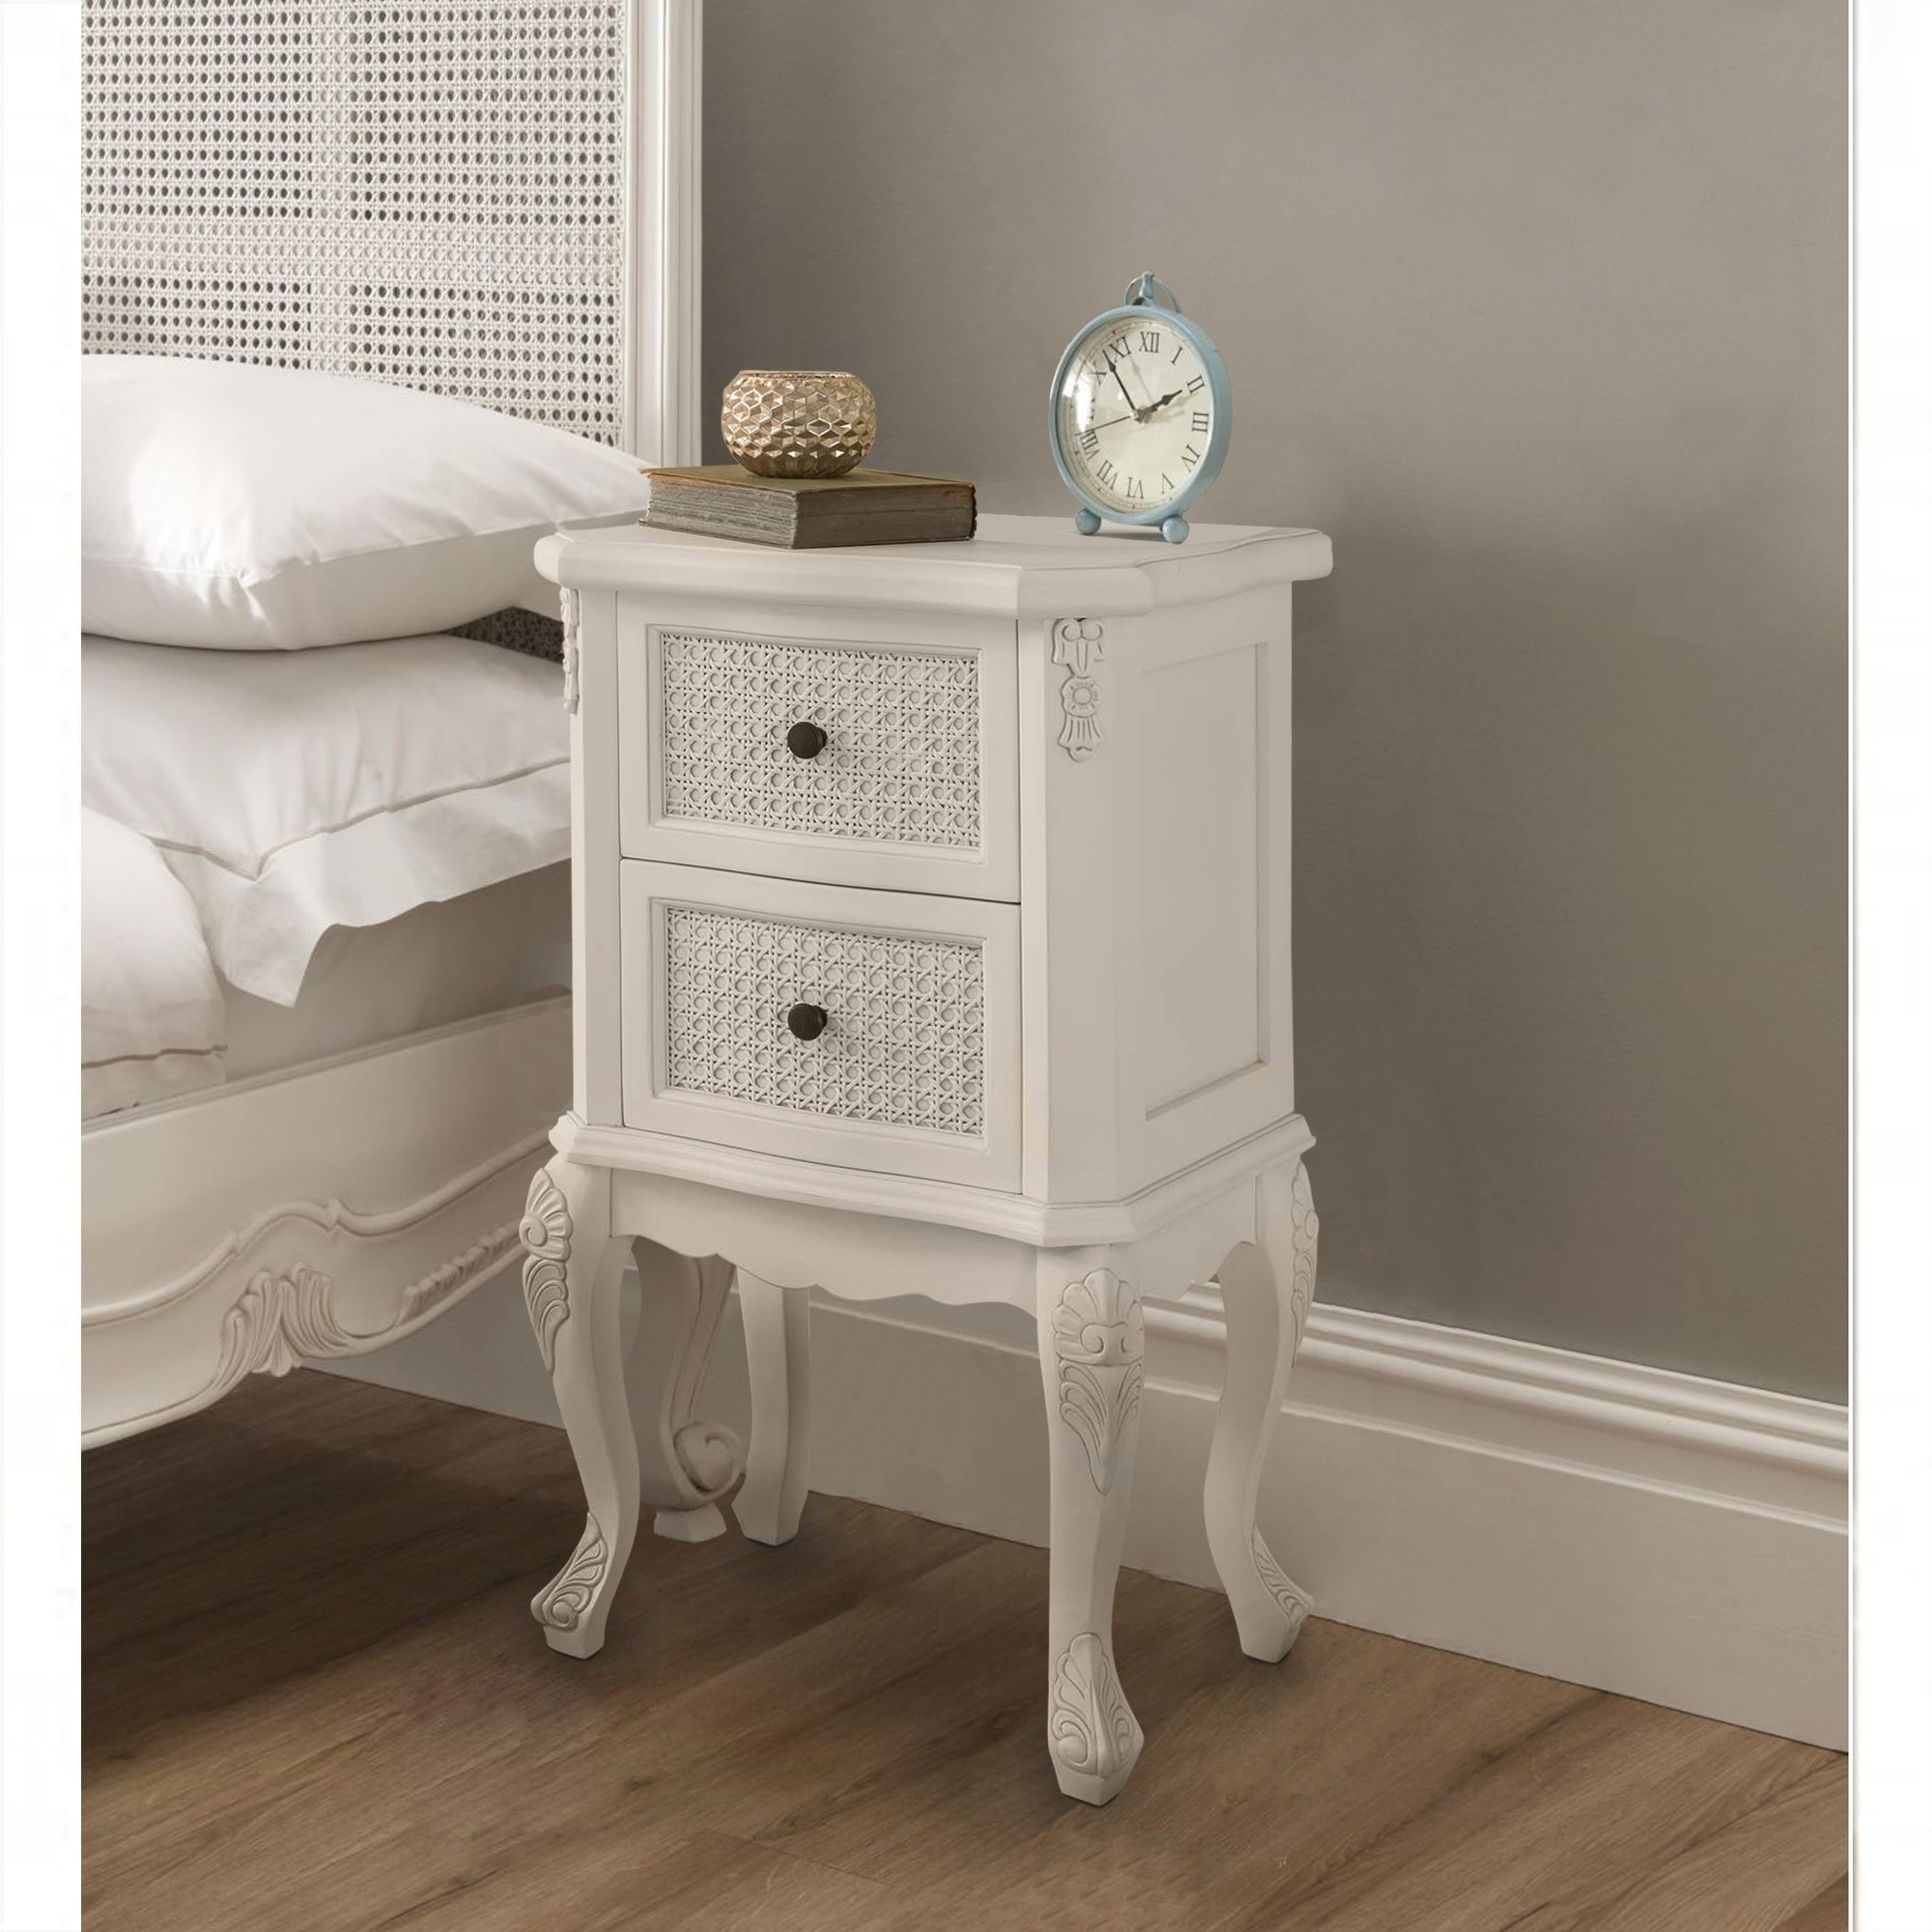 Rattan antique french style bedside table french and for French style bedroom furniture